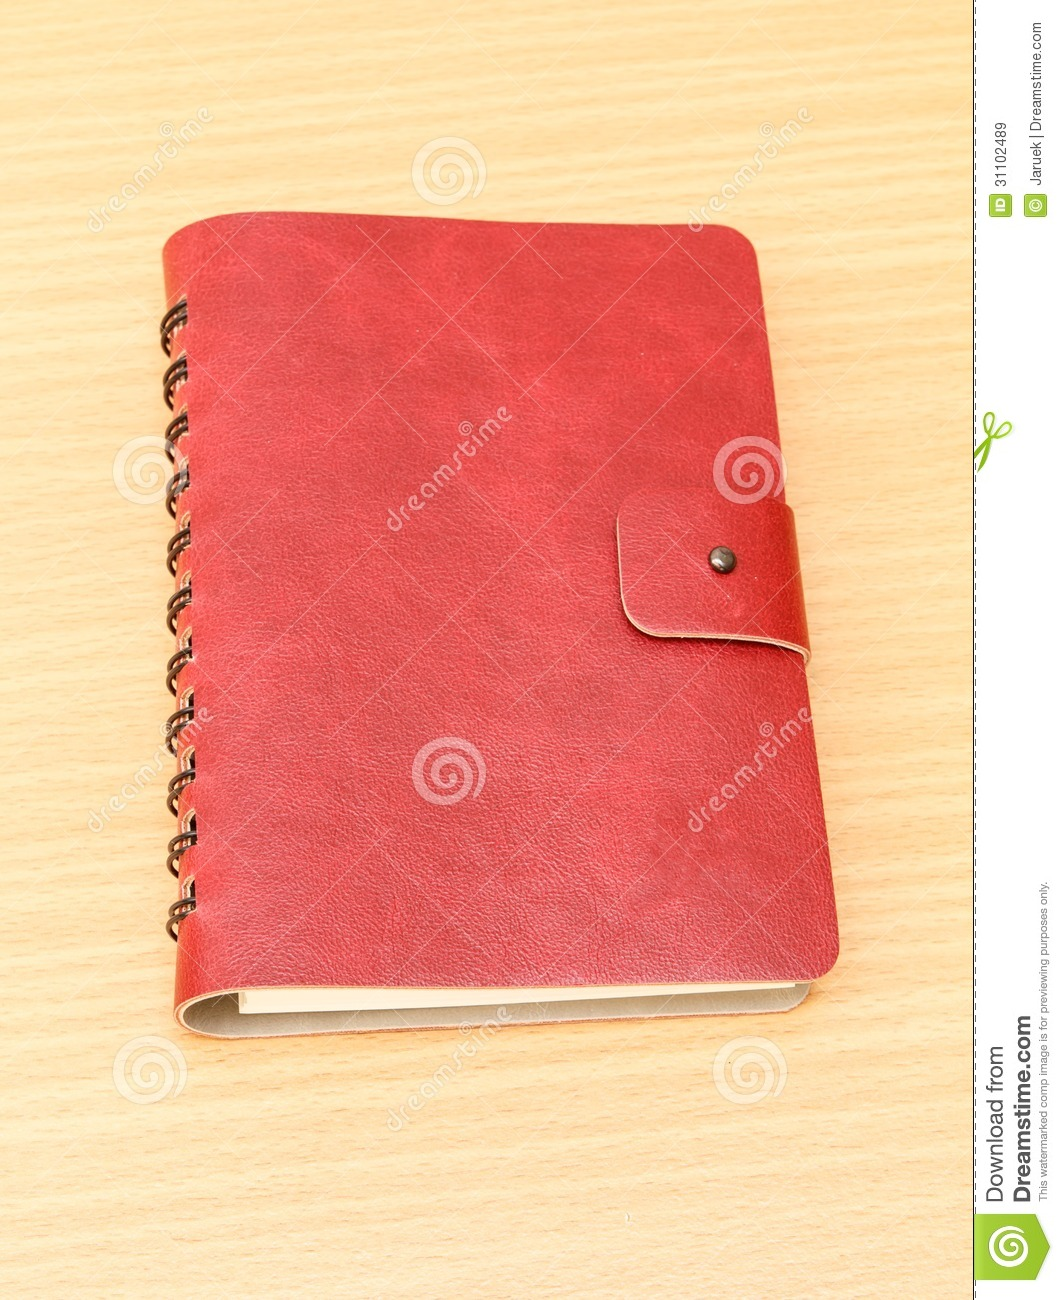 Notebook Cover Background : Leather cover of red notebook royalty free stock images